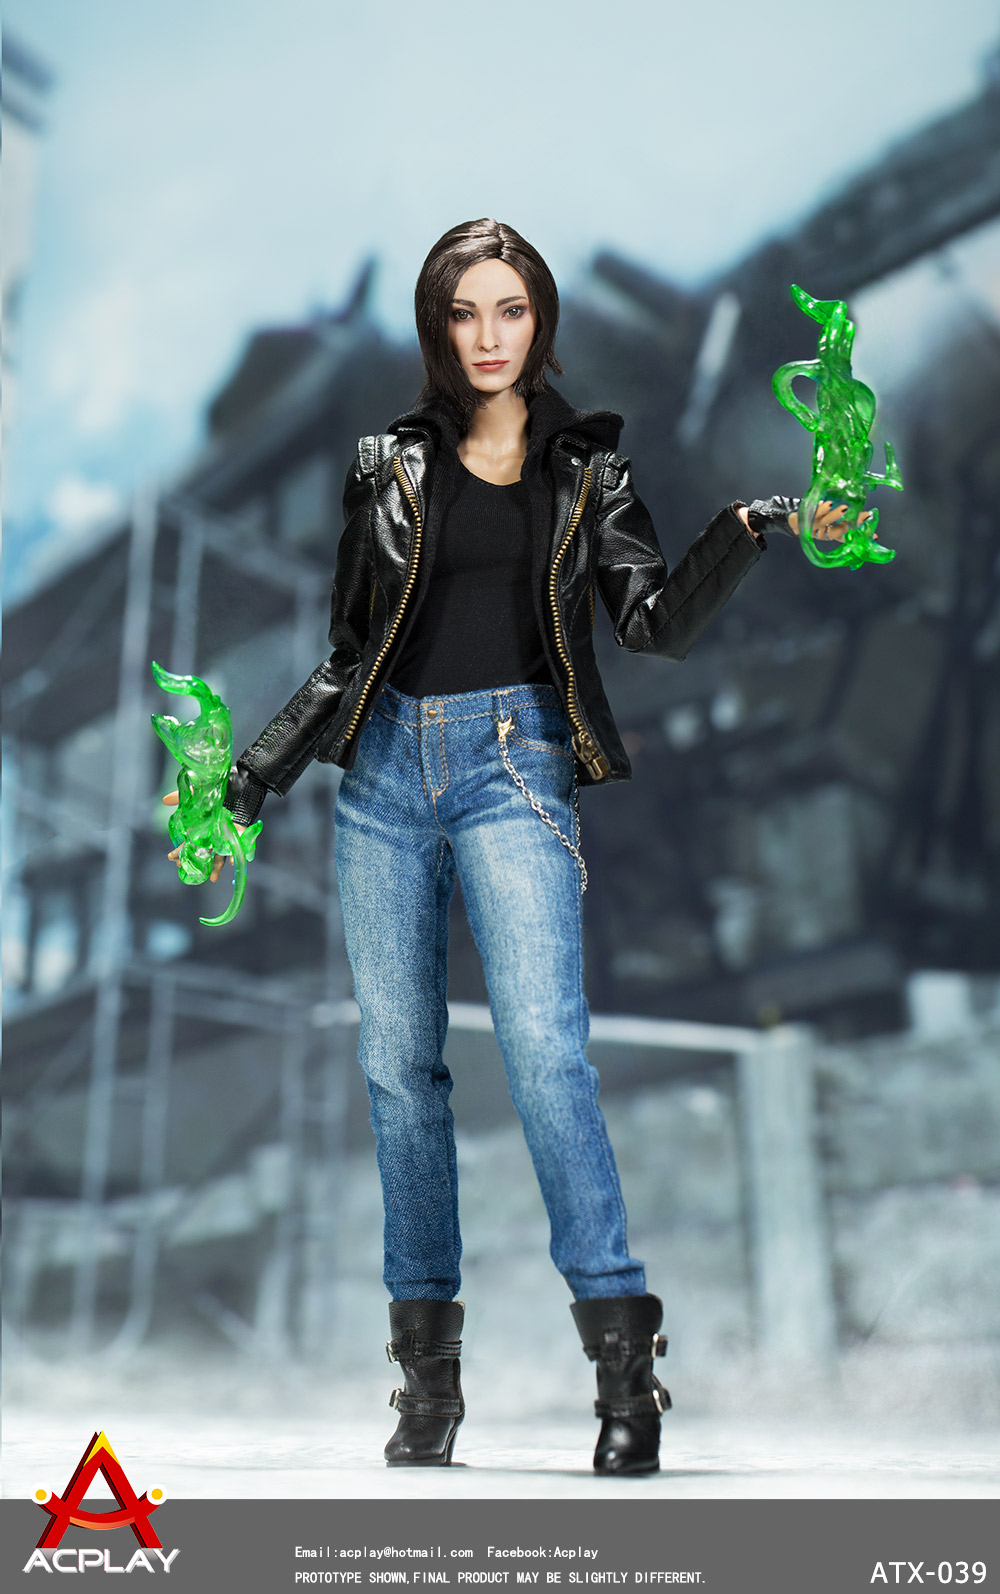 XMen - NEW PRODUCT: ACPlay new product: 1/6 ATX039 super hero magnetic girl box doll 1209